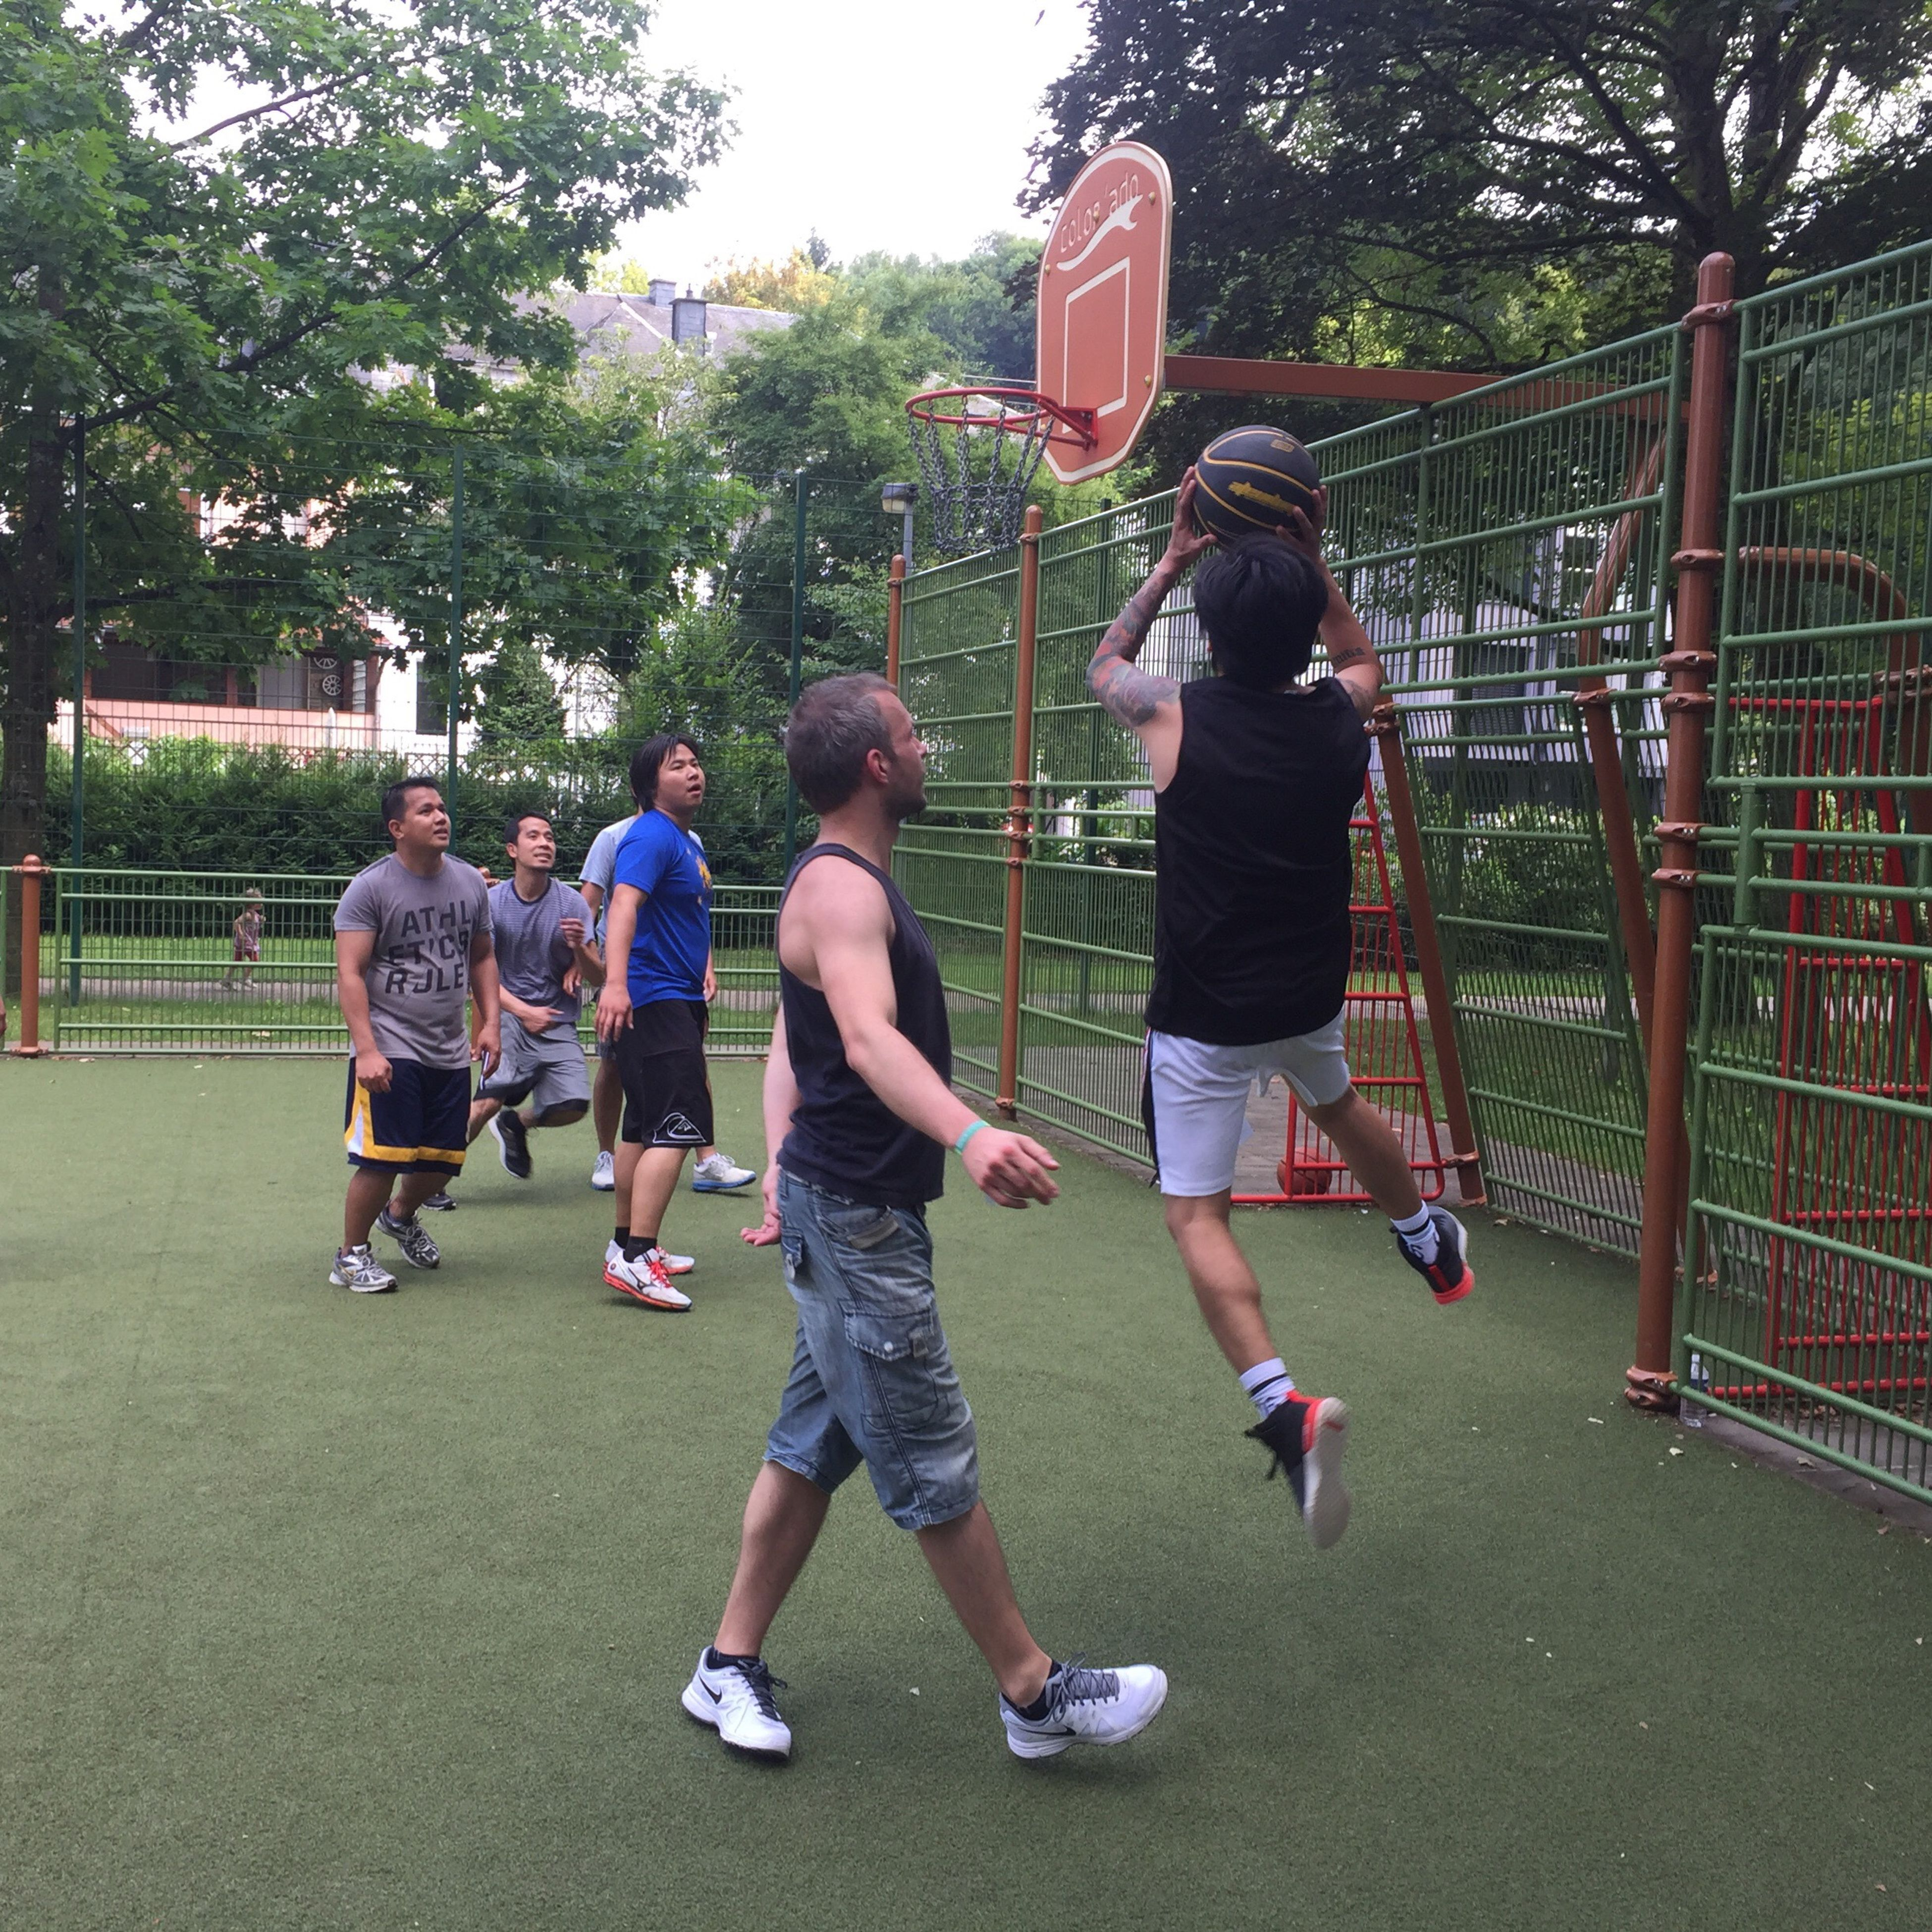 childhood, full length, lifestyles, leisure activity, boys, casual clothing, playing, tree, park - man made space, playground, day, fun, outdoors, enjoyment, city, city life